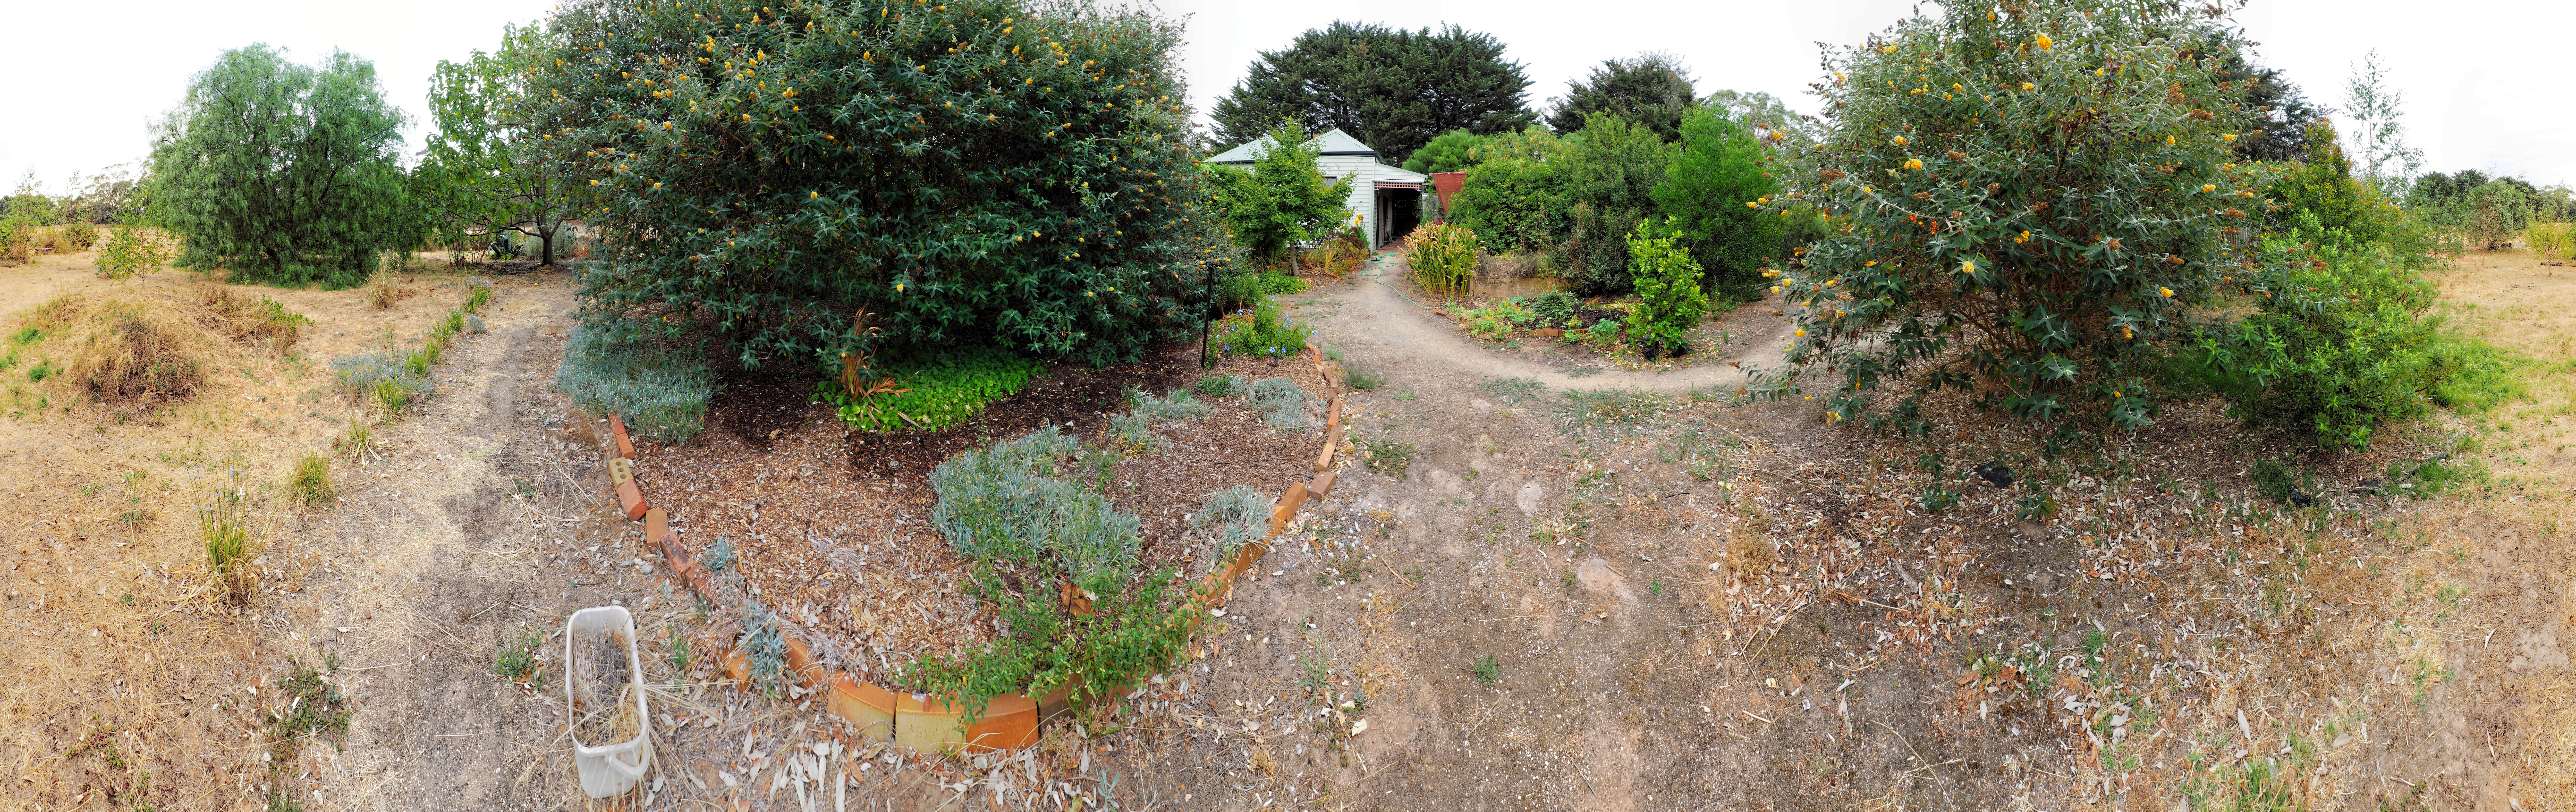 This should be garden-path-ne.jpeg.  Is it missing?